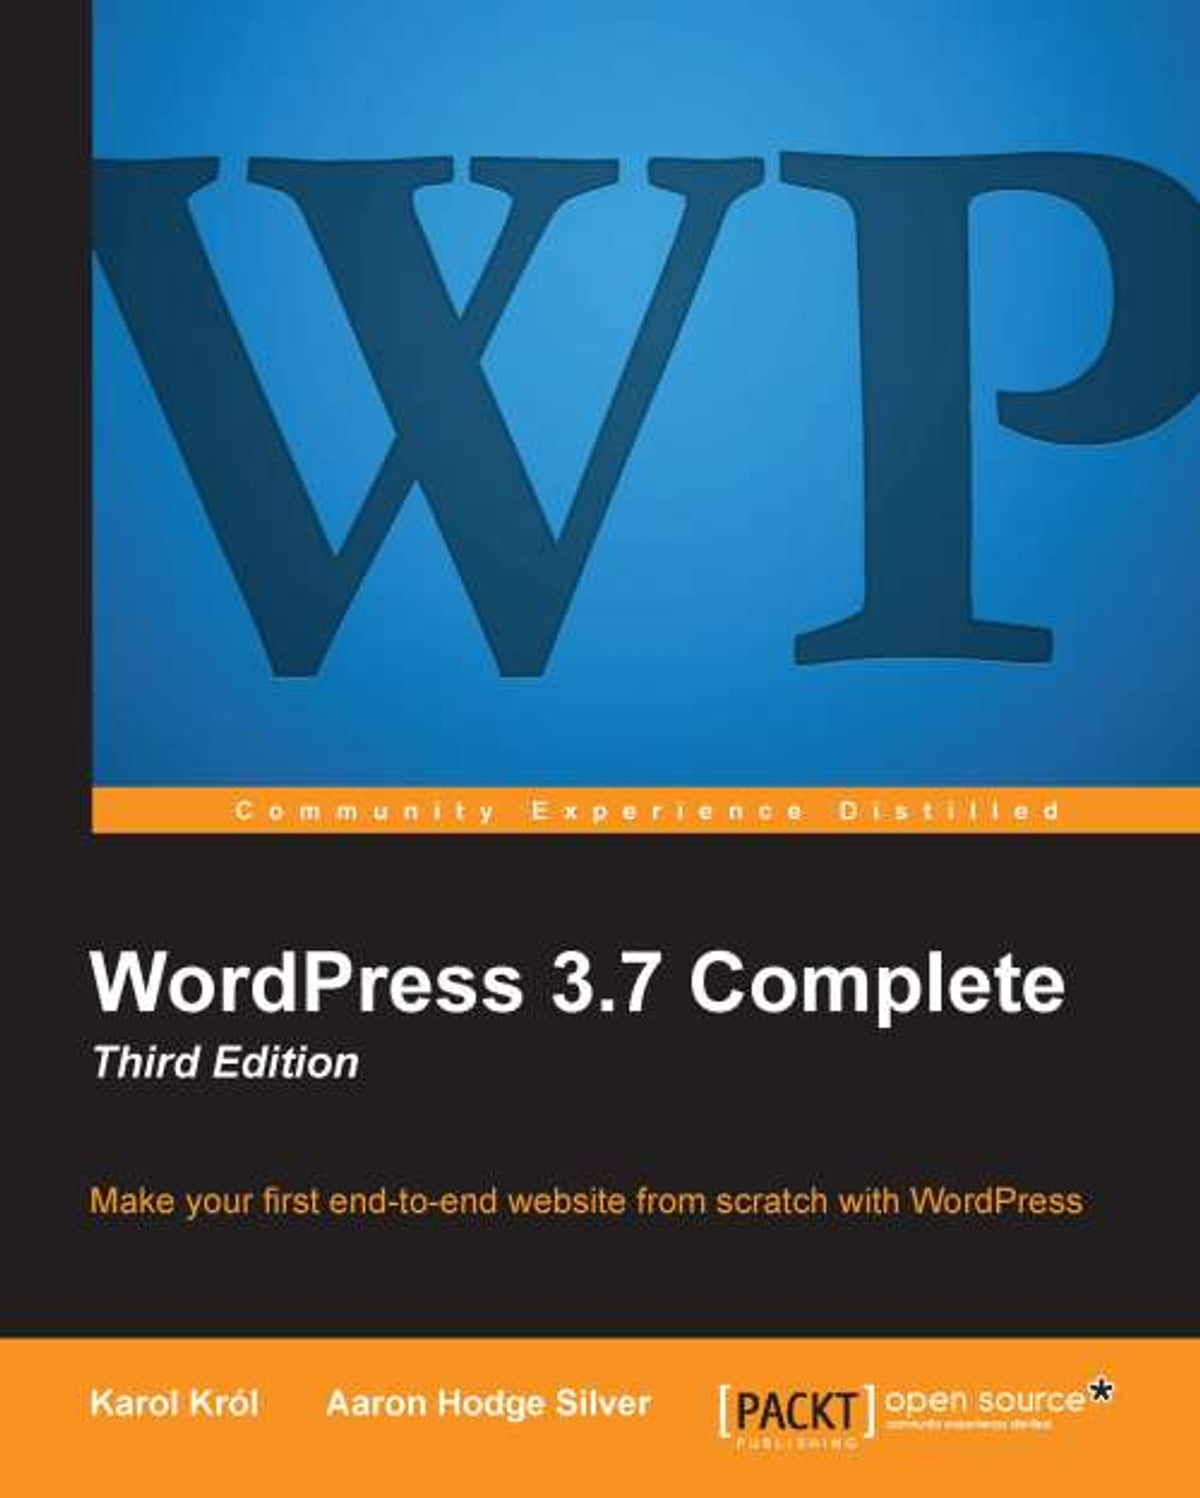 WordPress 3.7 Complete - Third Edition eBook by Karol Król - 9781782162414  | Rakuten Kobo